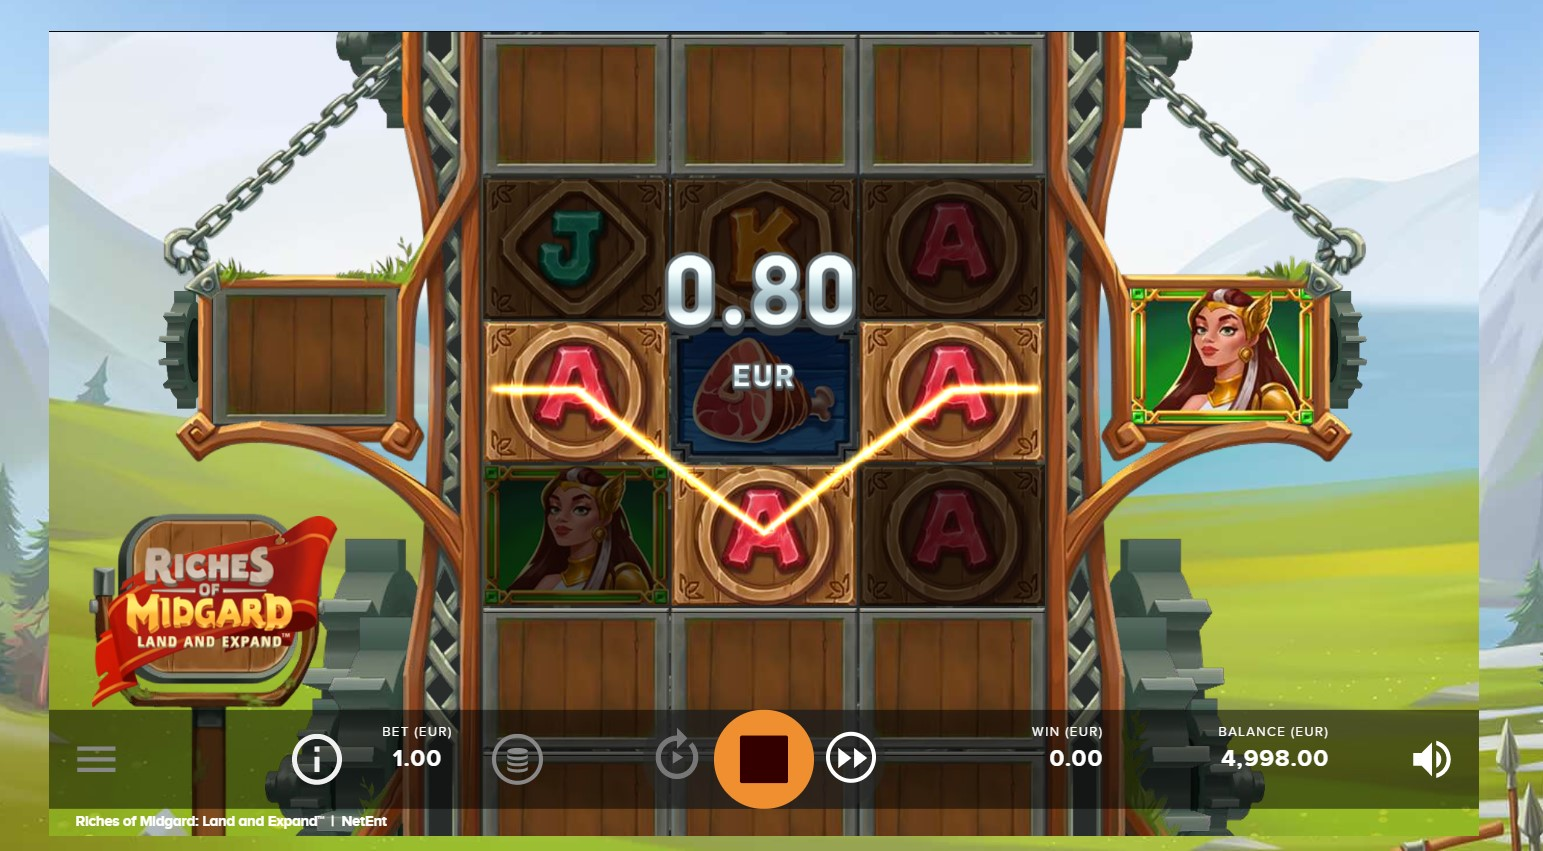 CasinoLuck slot game